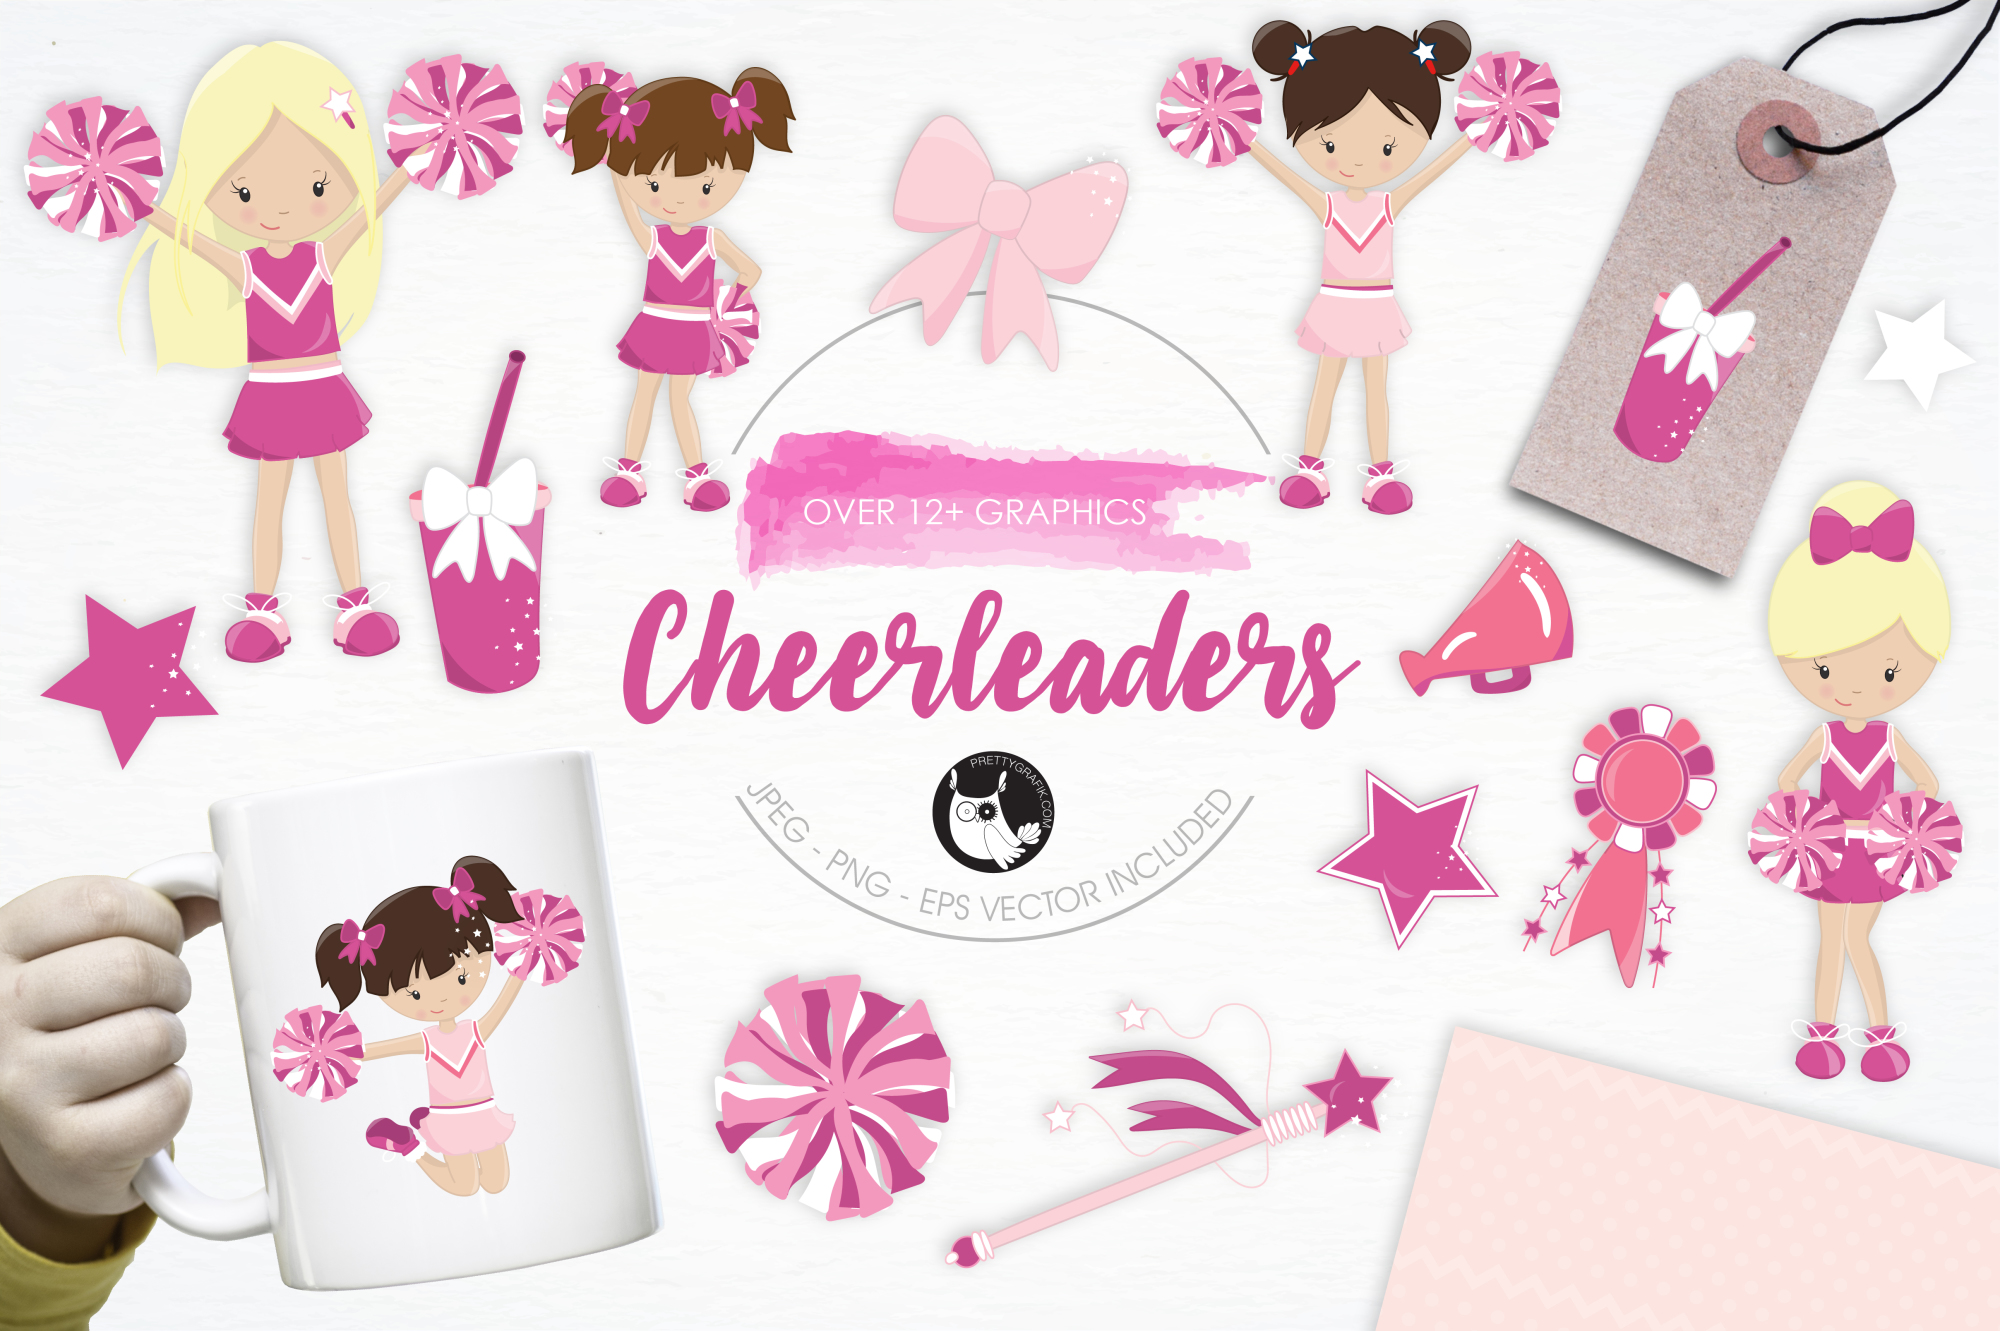 Cheerleaders graphics and illustrations example image 1